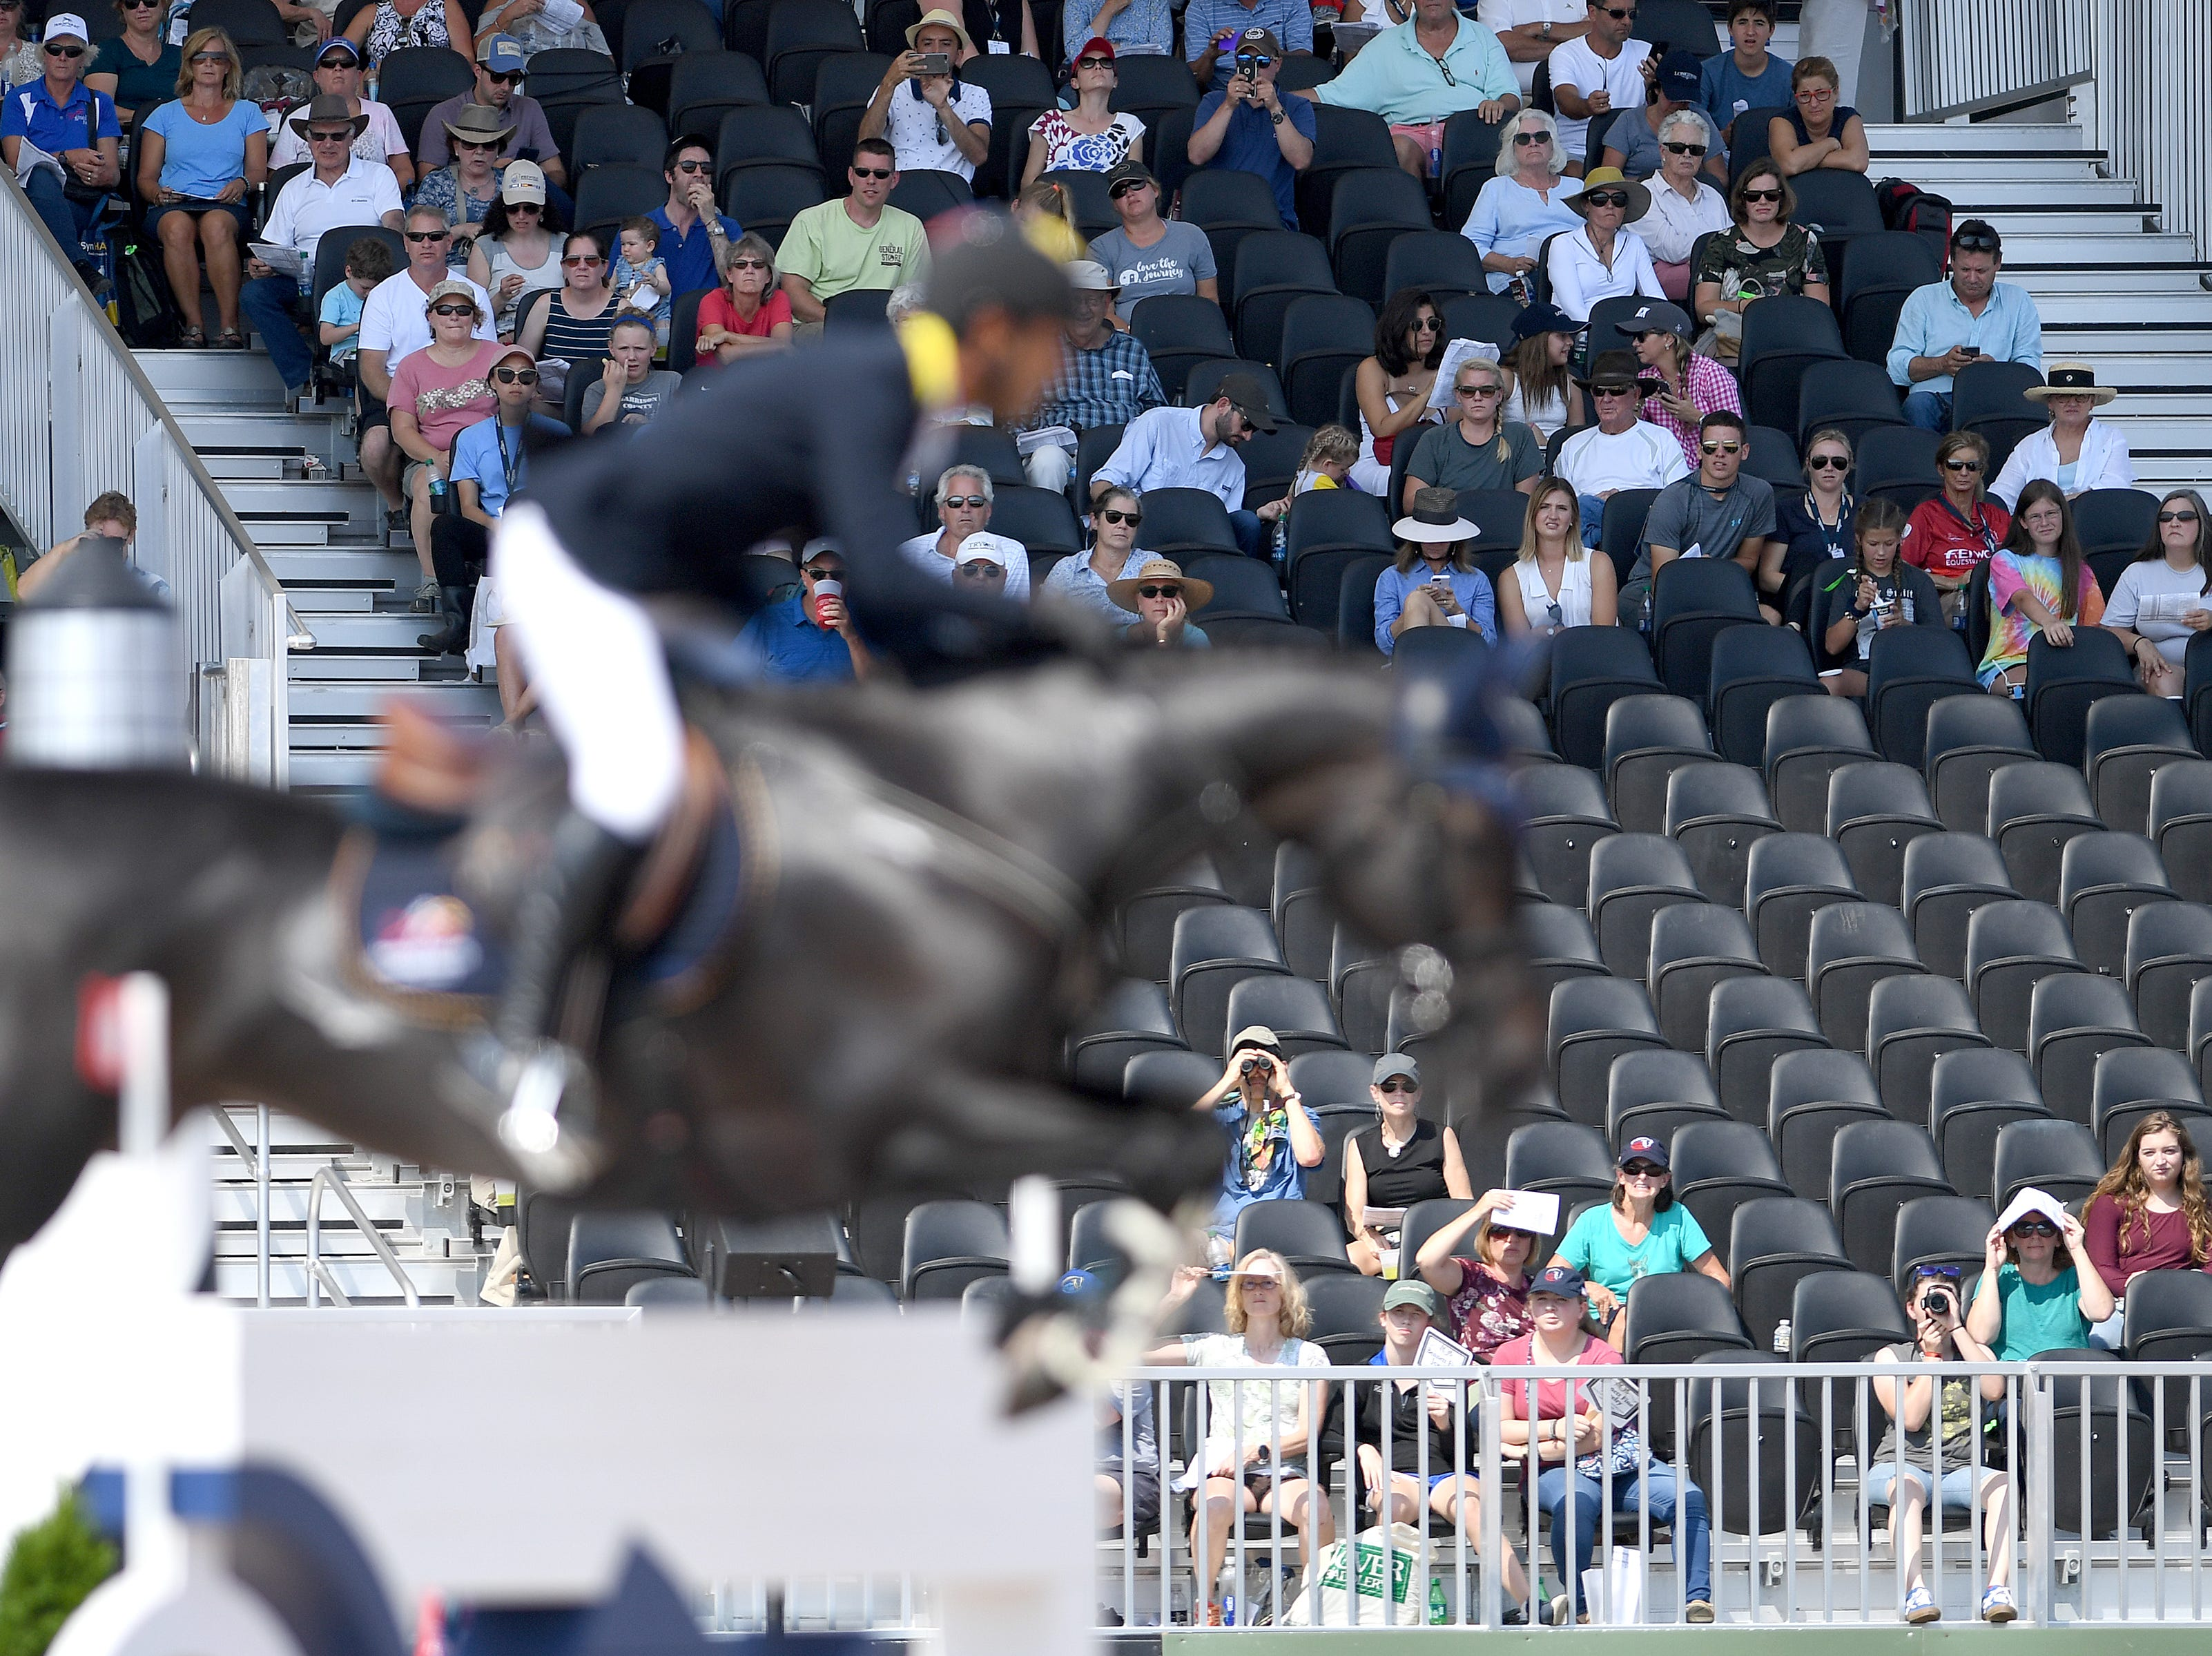 Fans watch the team jumping competition of the FEI World Equestrian Games at the Tryon International Equestrian Center on Sept. 20, 2018.